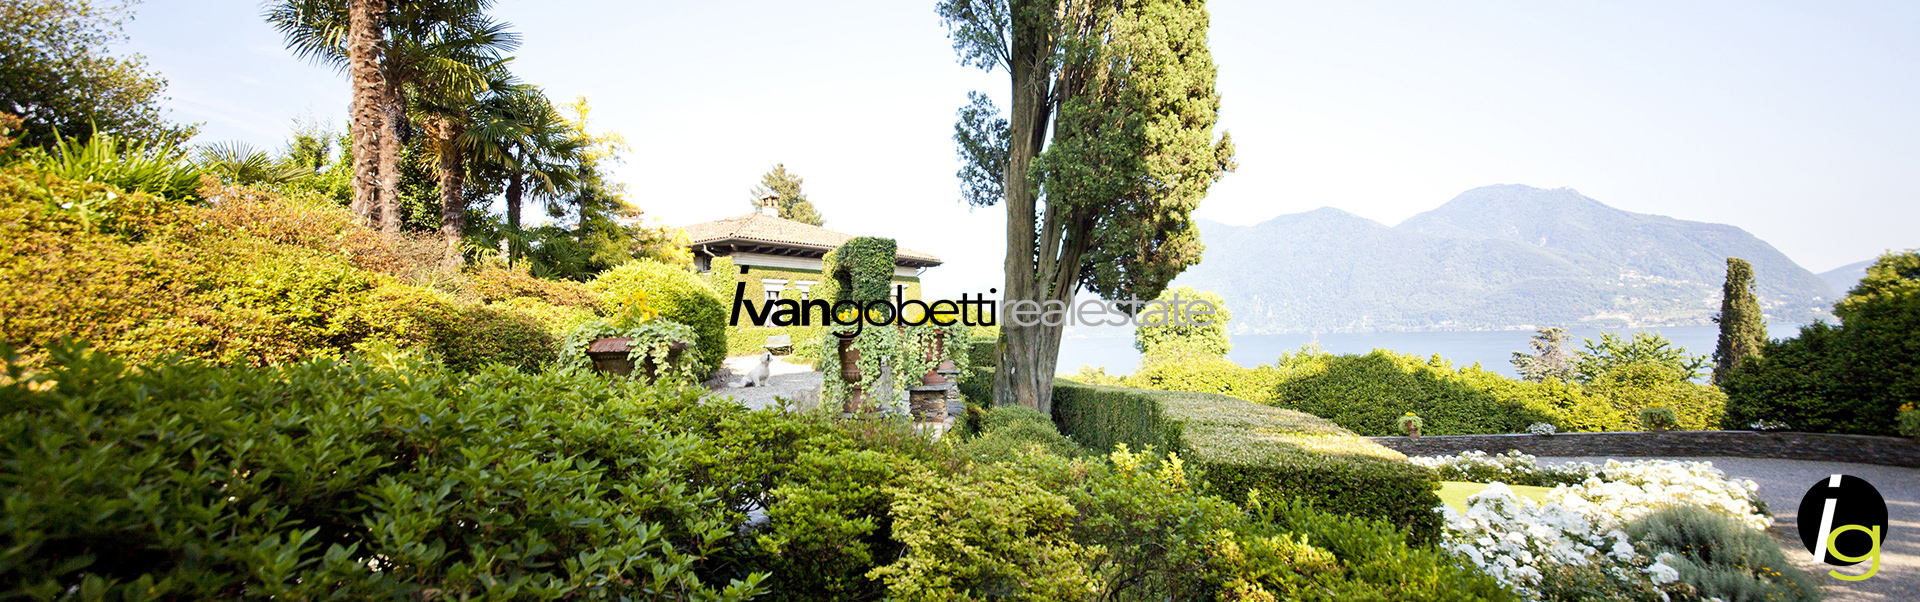 For sale important and elegant Villa with park and swimming pool